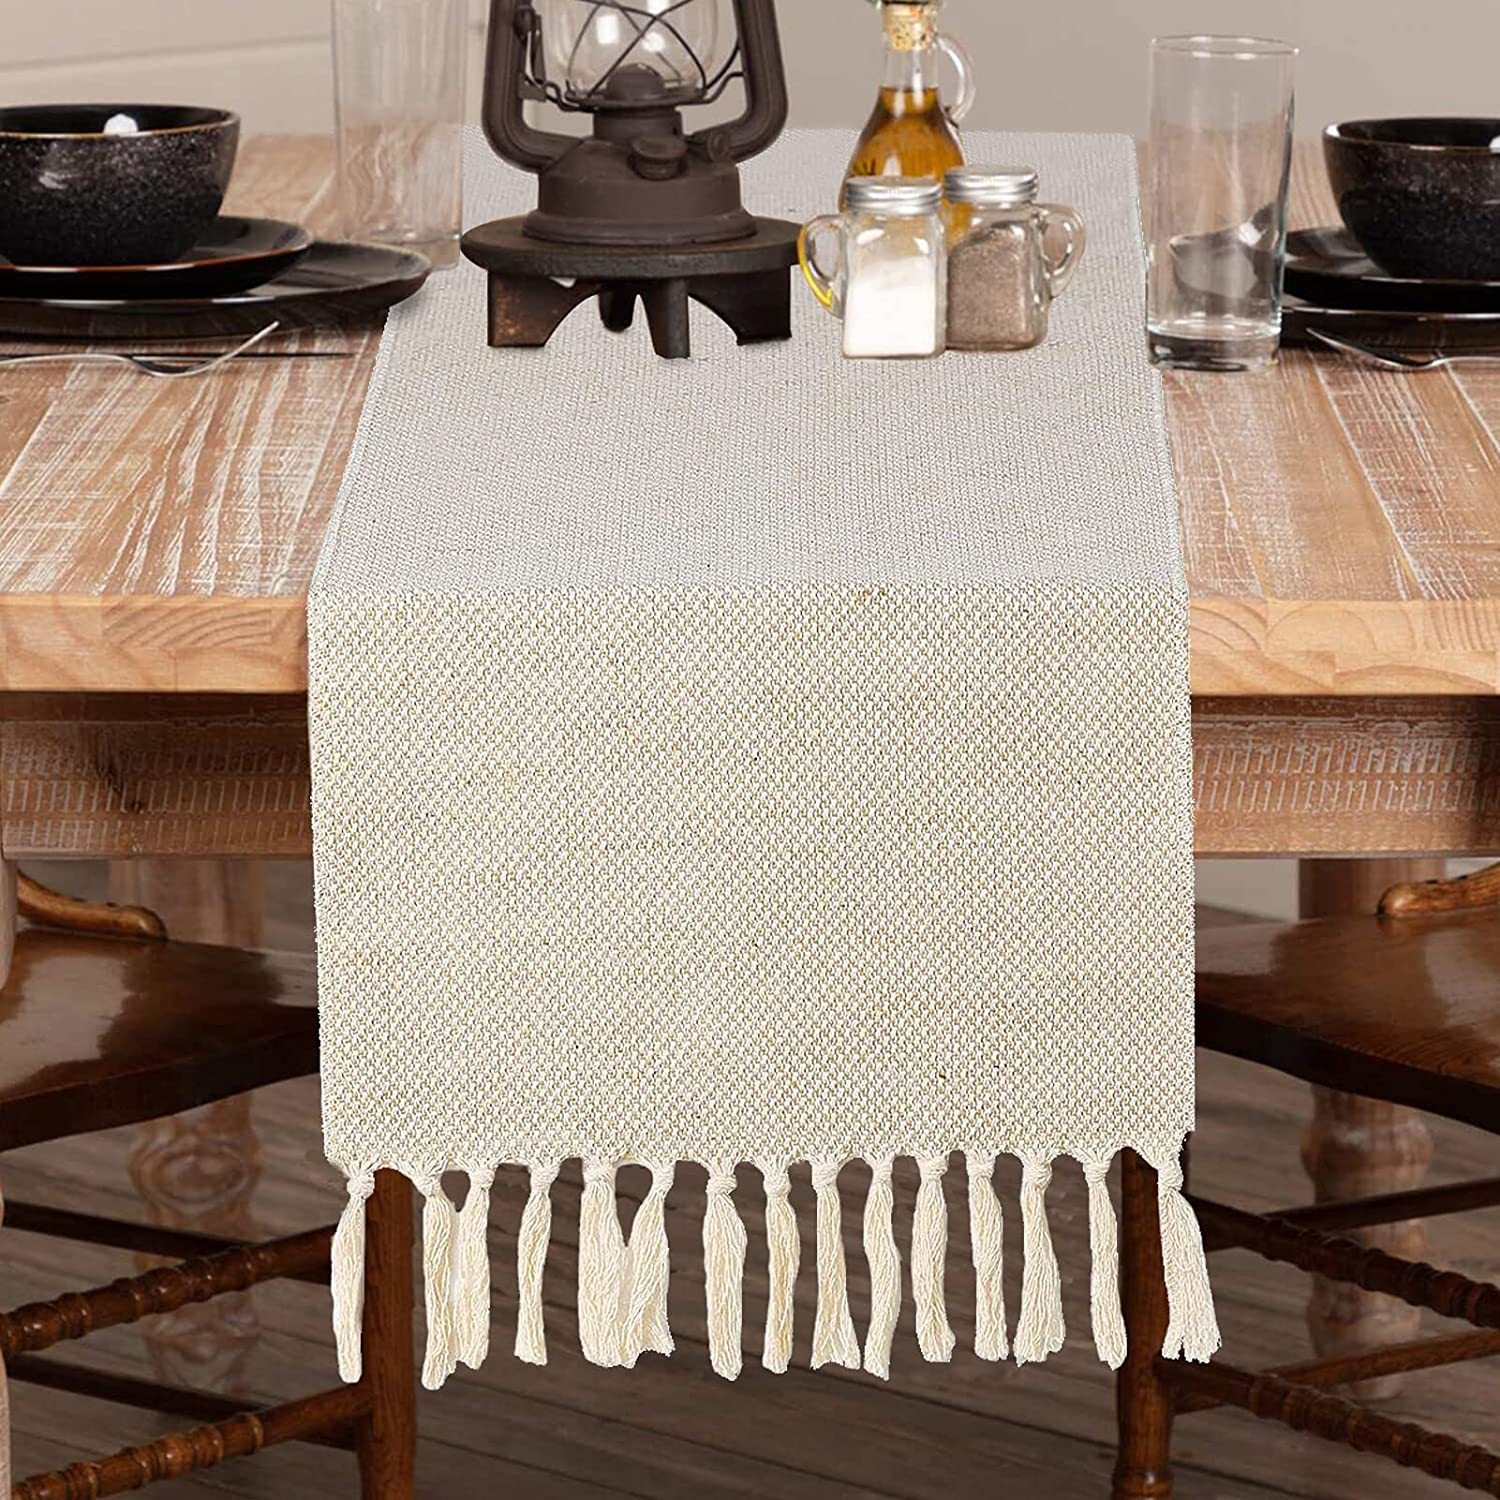 WIVOP Burlap New popularity Table Runner Farmhouse Style New item 13 x Rustic C Inch 72